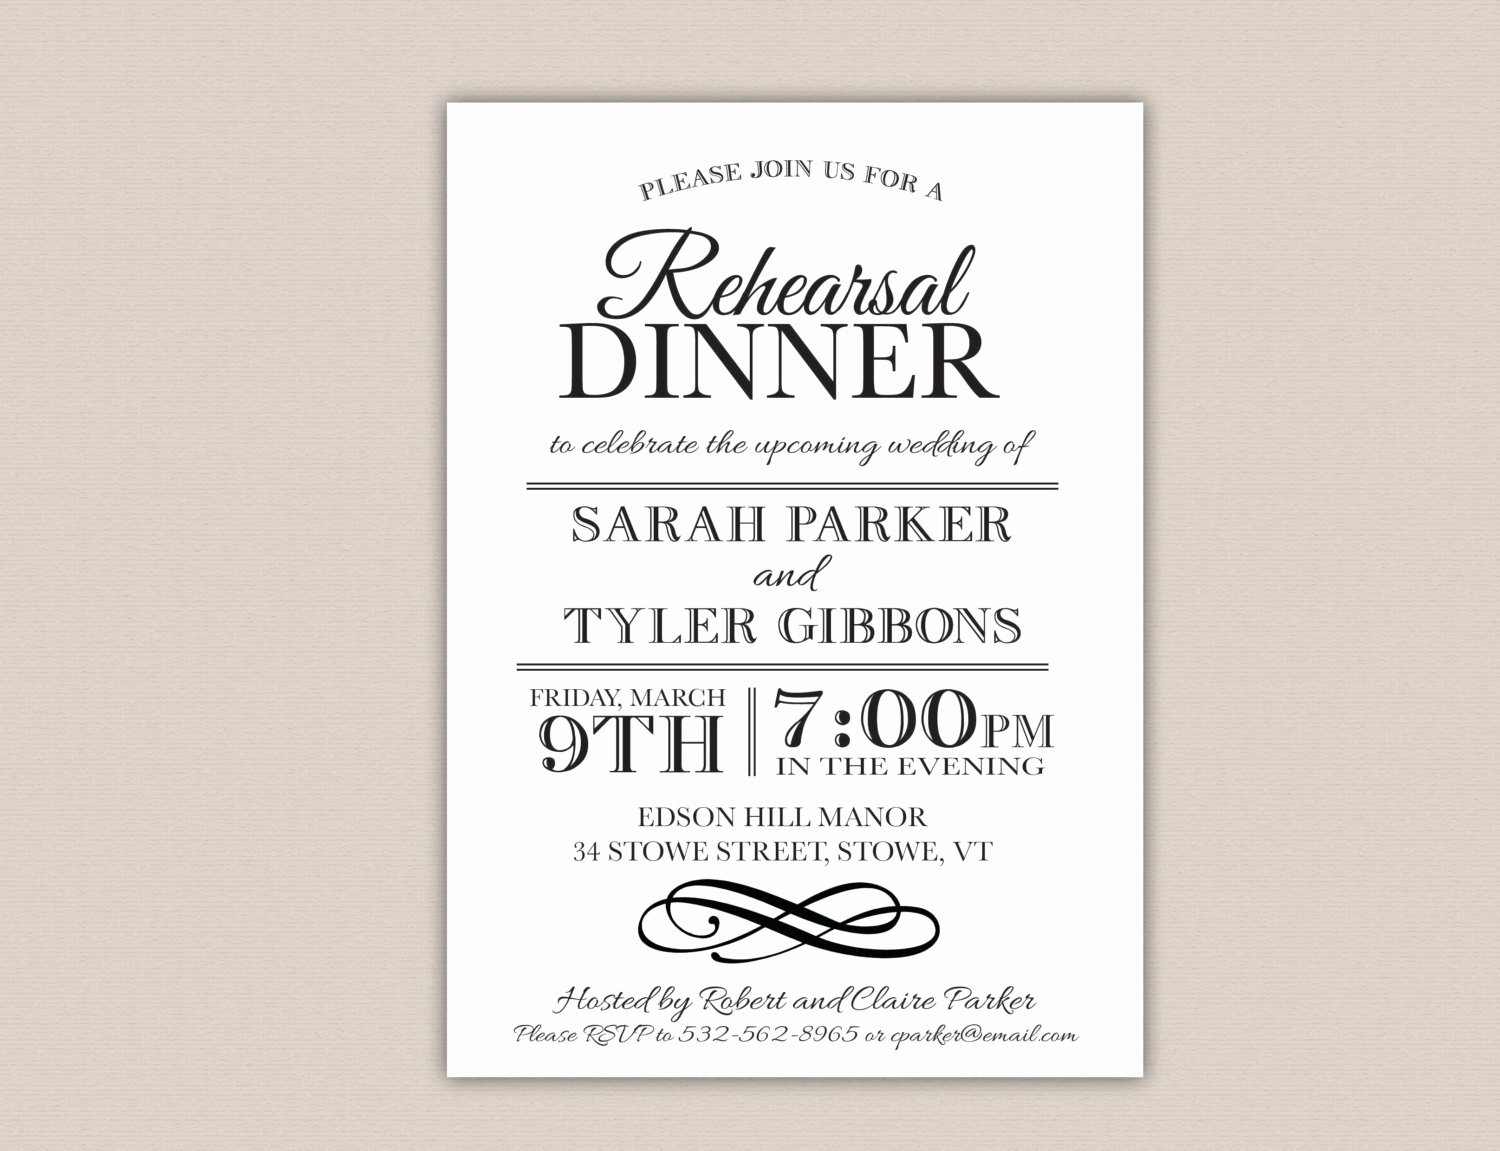 Rehearsal Dinner Menu Template Awesome Rehearsal Dinner Invitation Template Free